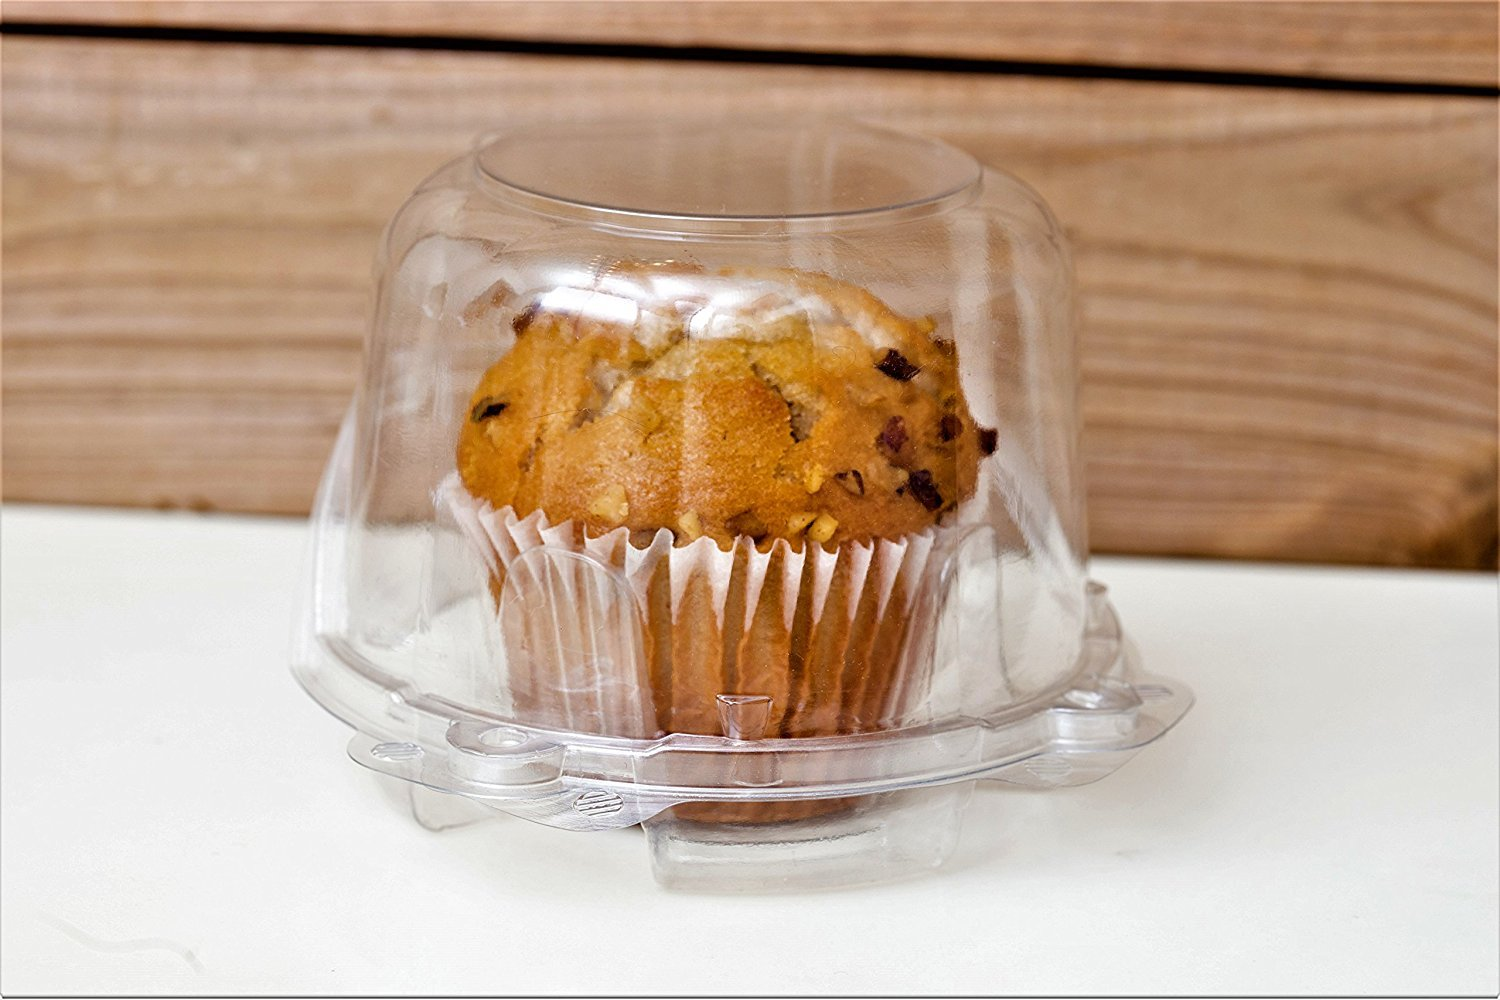 Clear Plastic Dome Muffin/Jumbo Cupcake Holders, Single Compartment- Pack of 50. (Clear, Large) by CulinWare (Image #3)